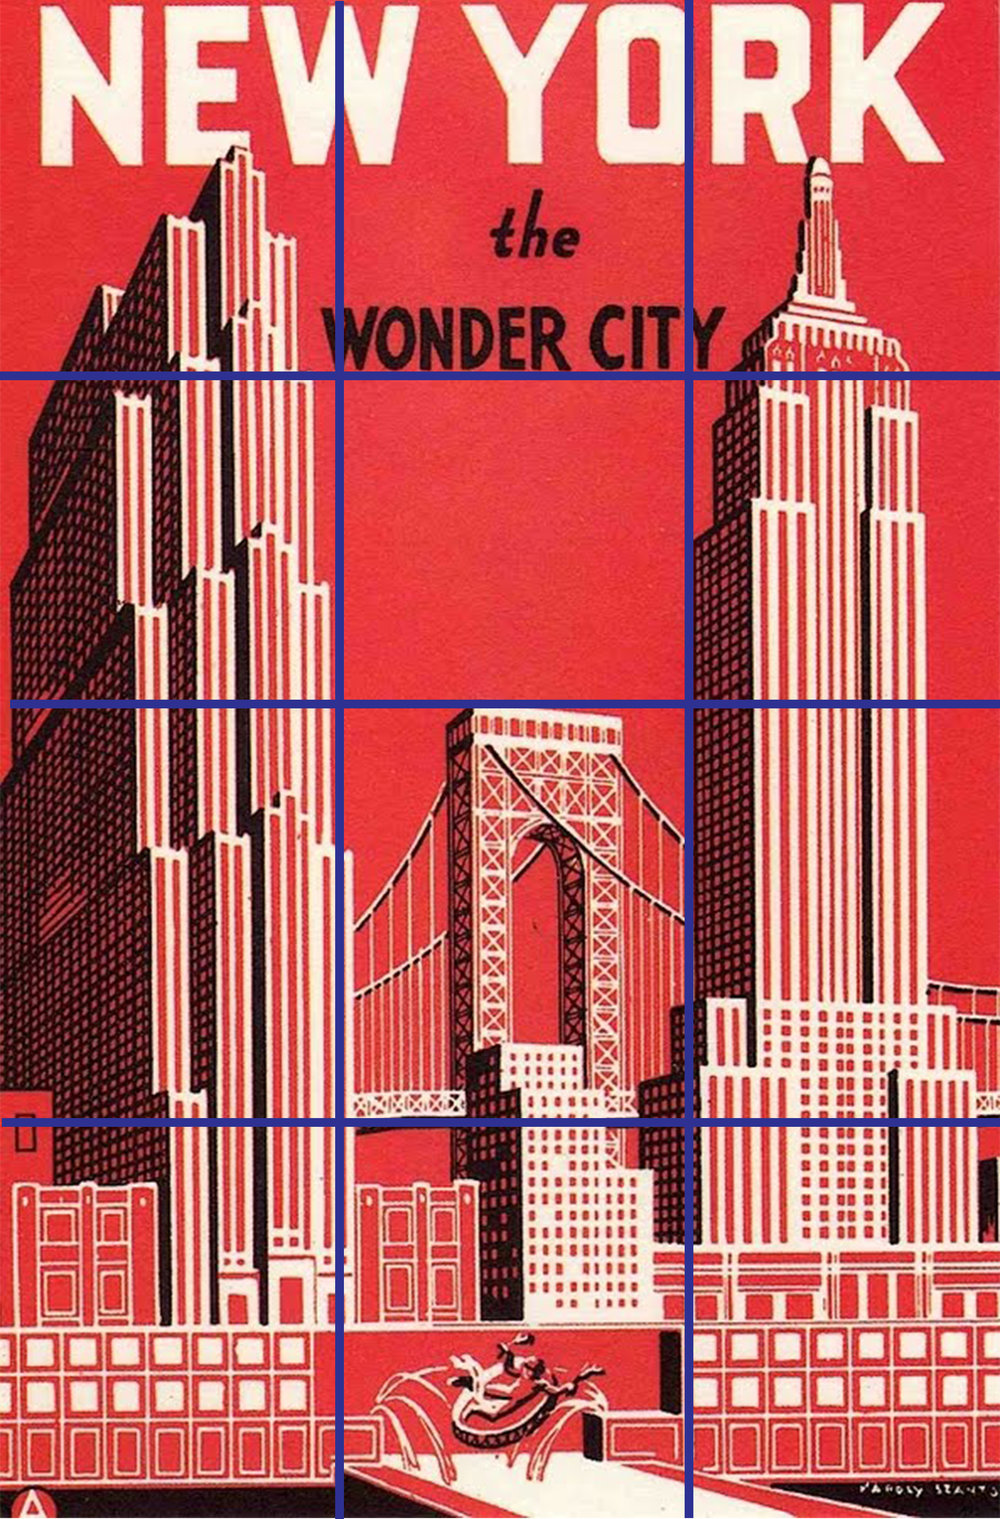 NEW YORK the WONDER CITY | Grid Analysis